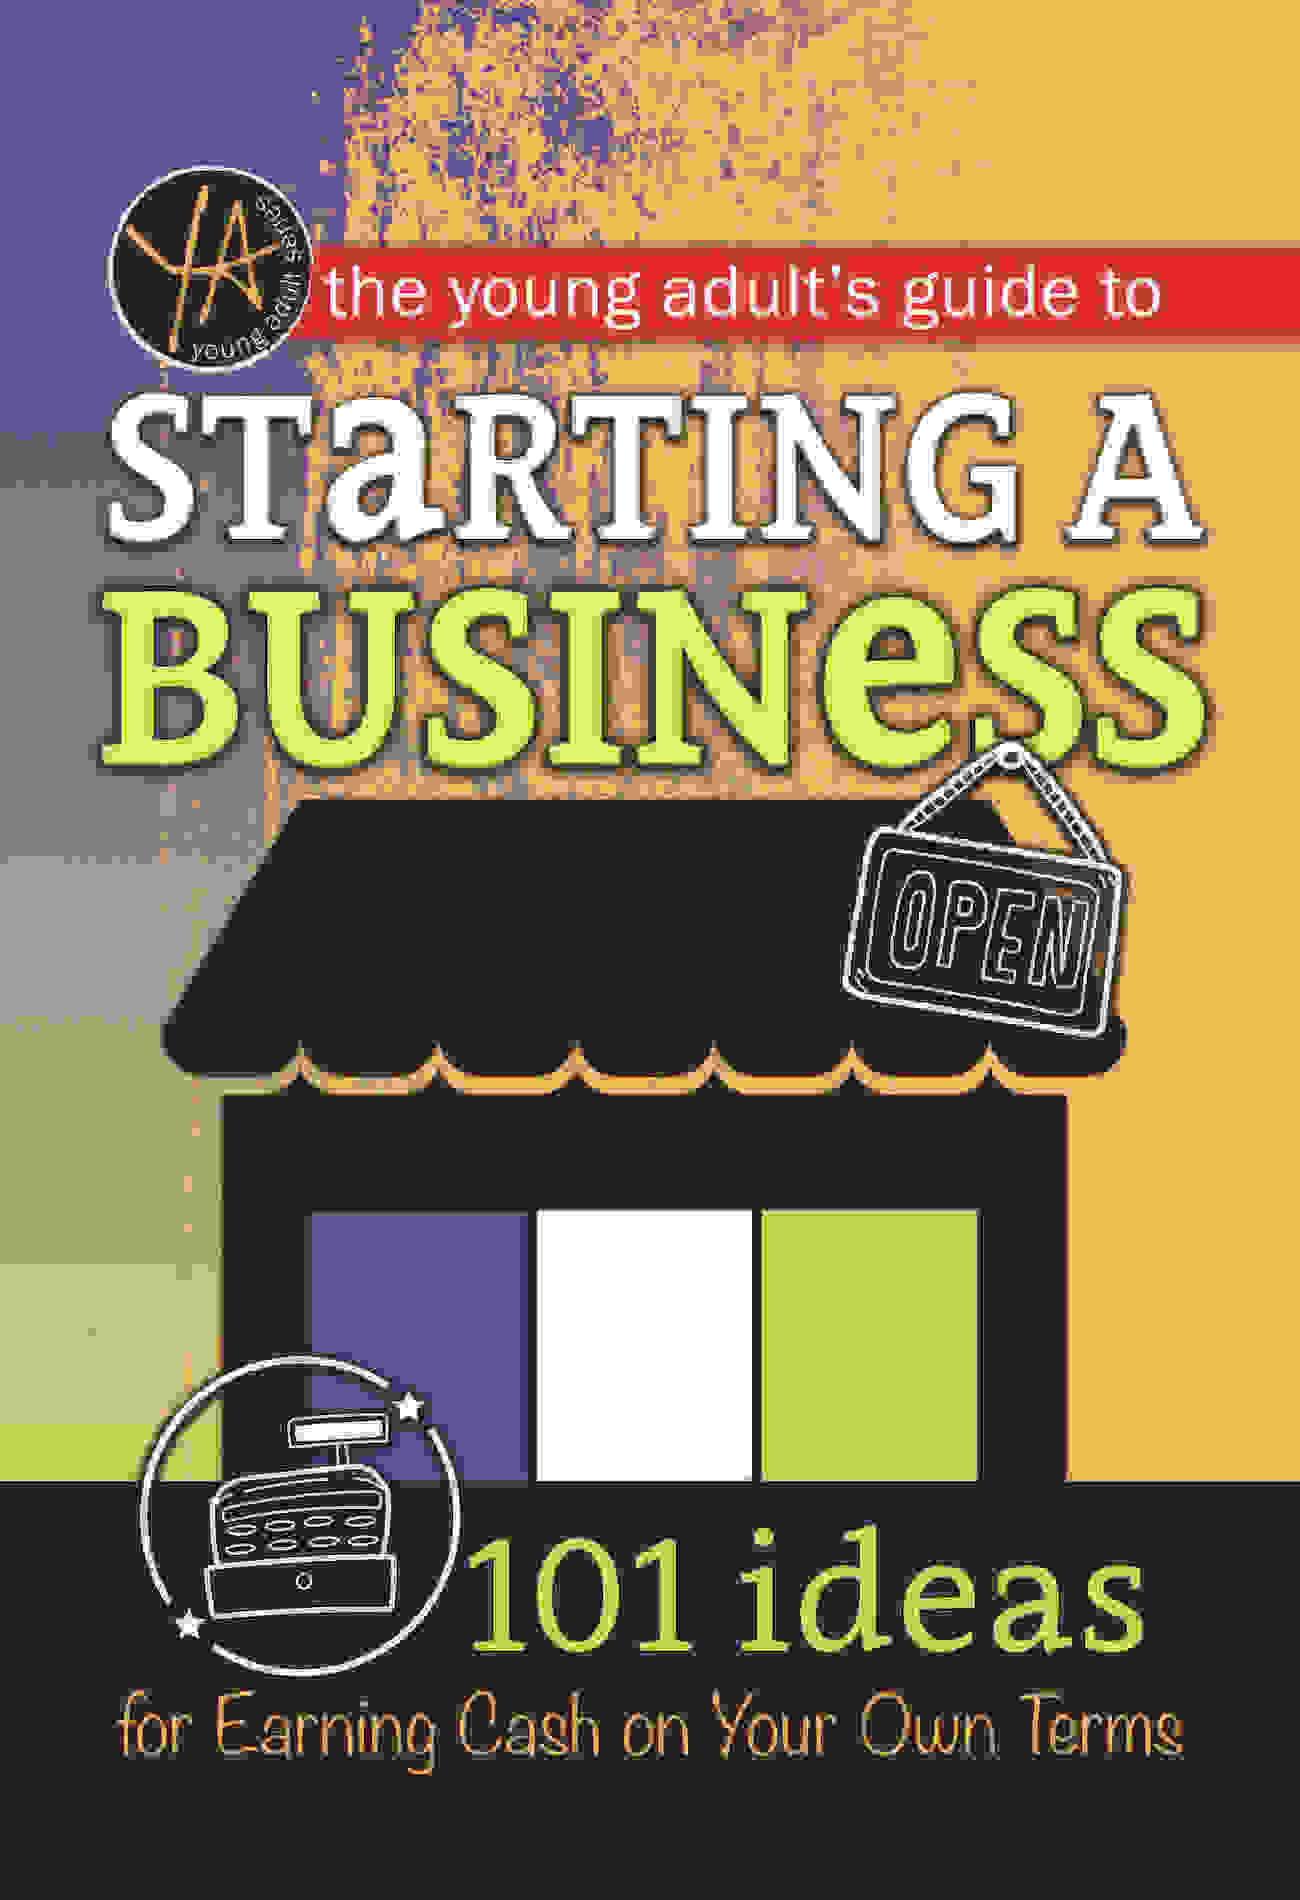 The Young Adult's Guide to Starting a Small Business 101 Ideas for Earning Cash on Your Own Terms